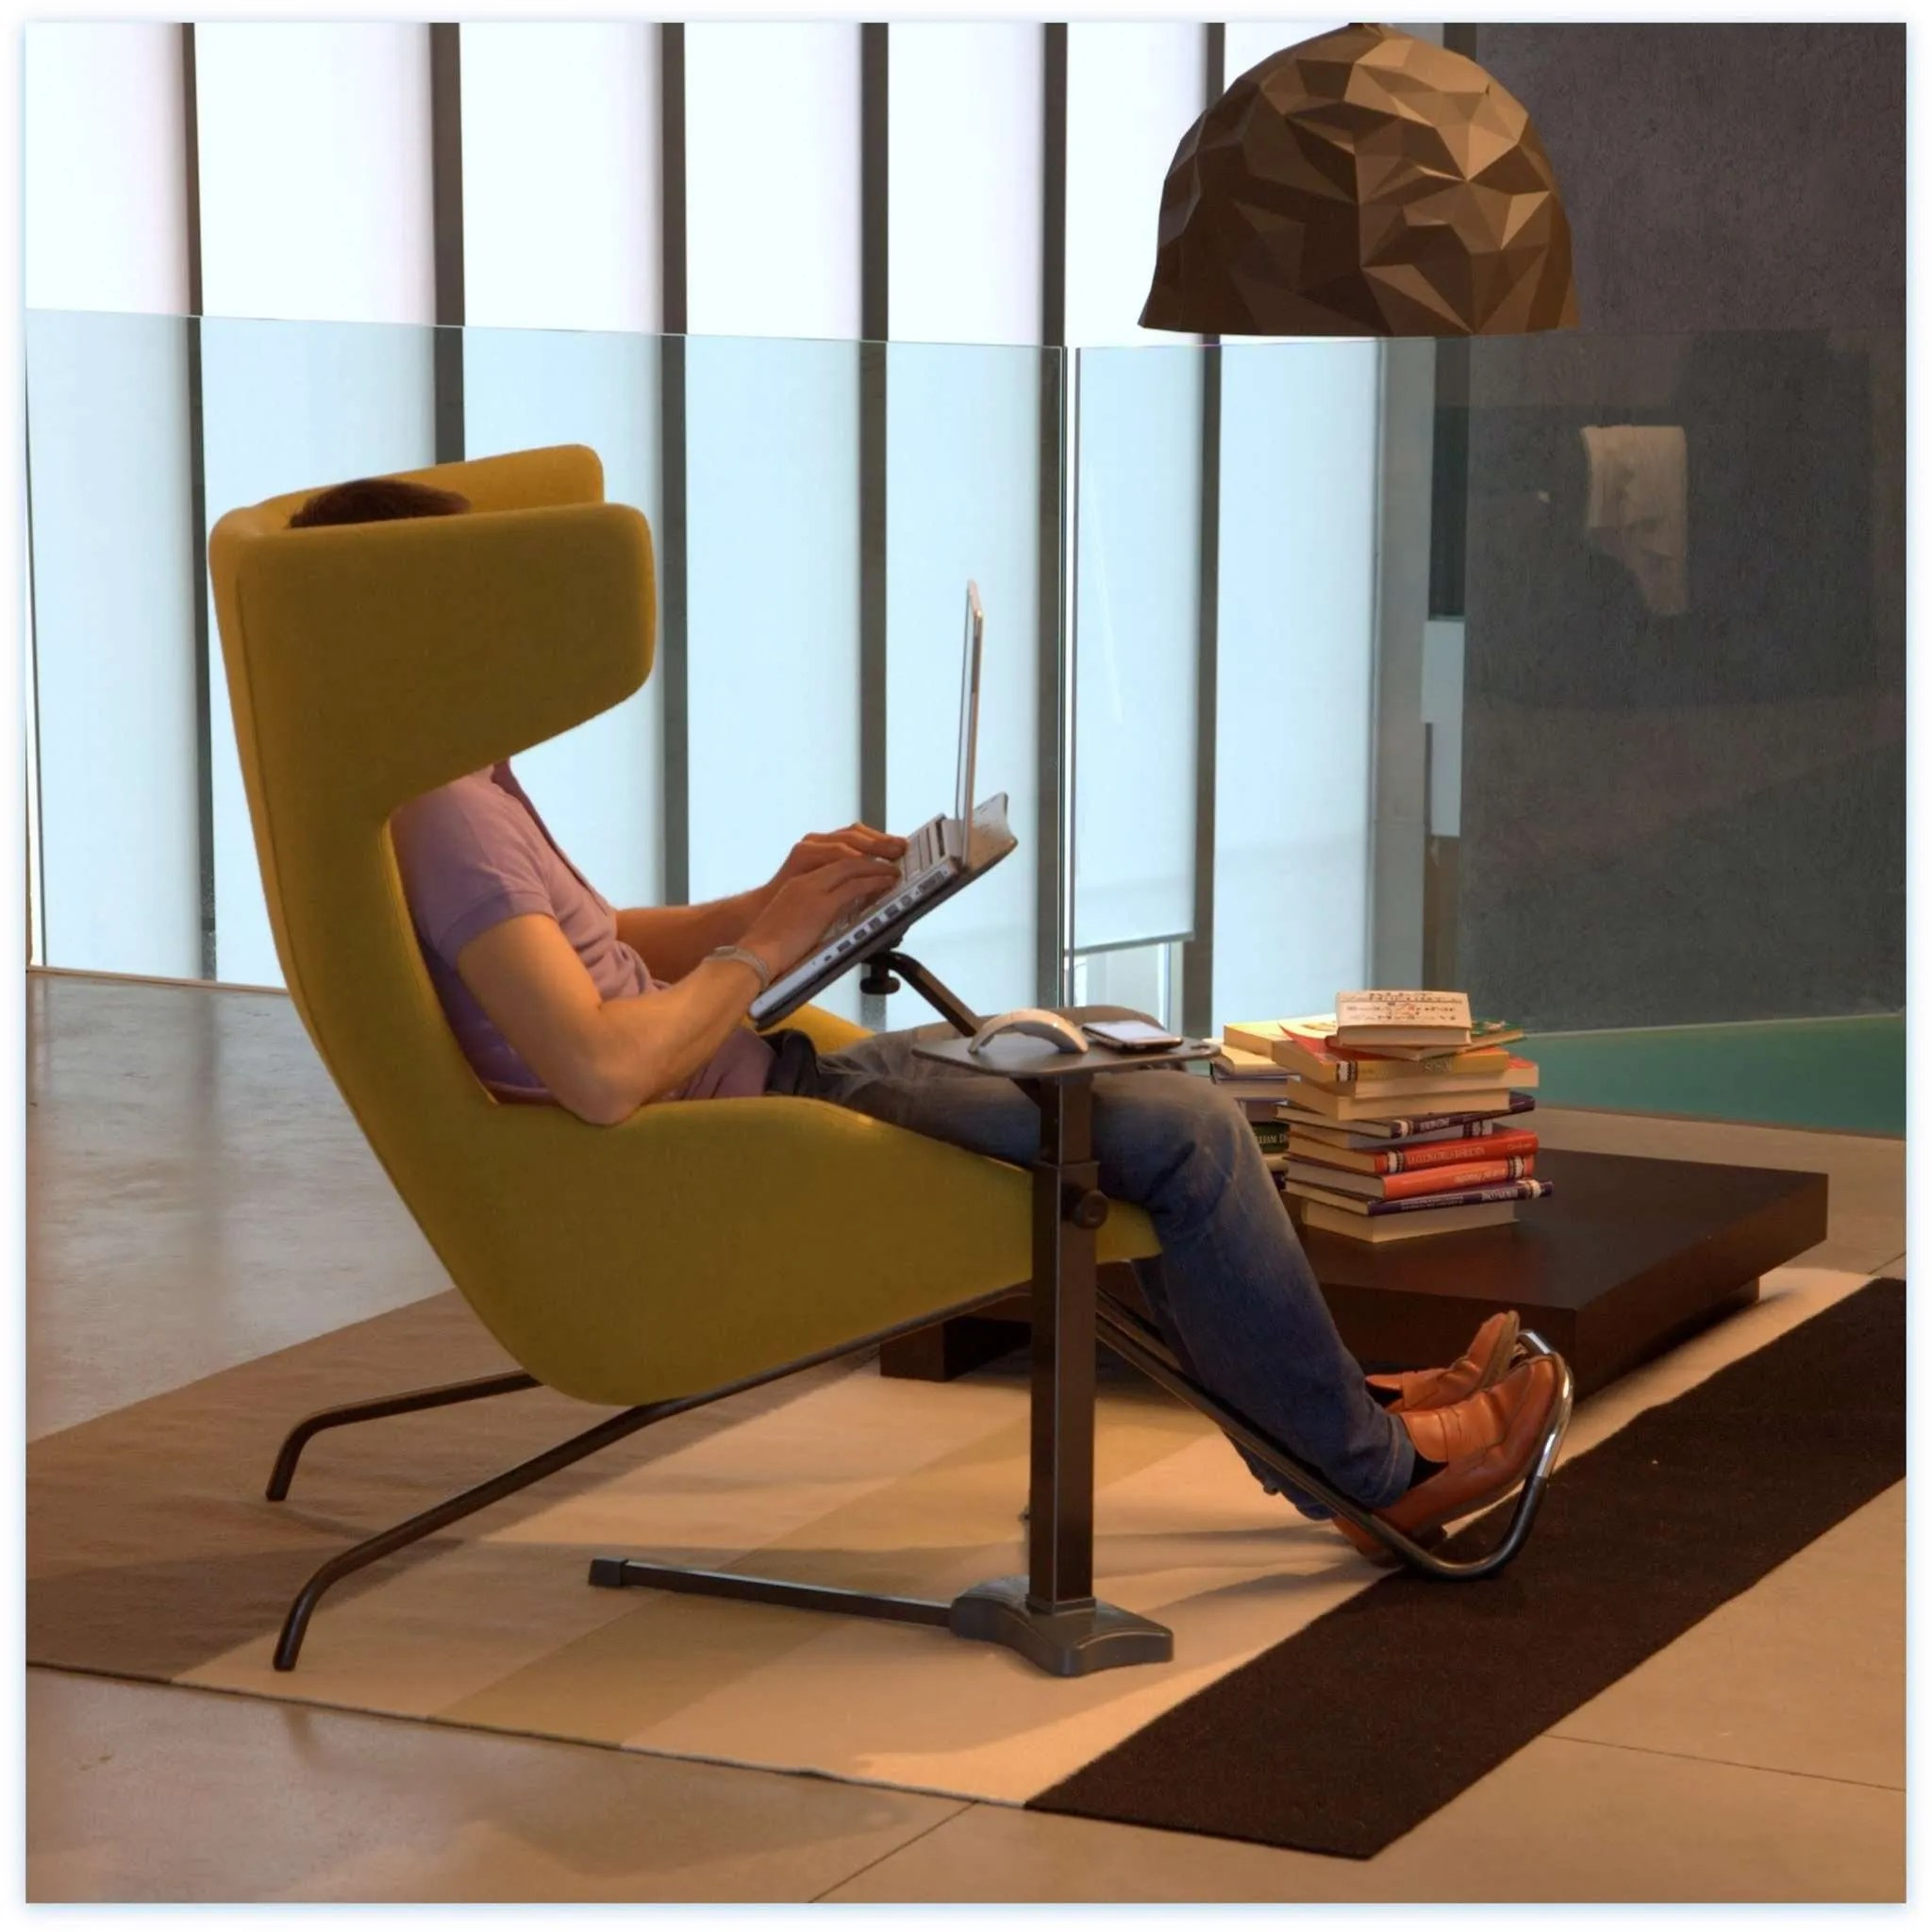 Lounge Desk Chair No Back Pain Better An Ergonomic Chair Or A Laptop Support